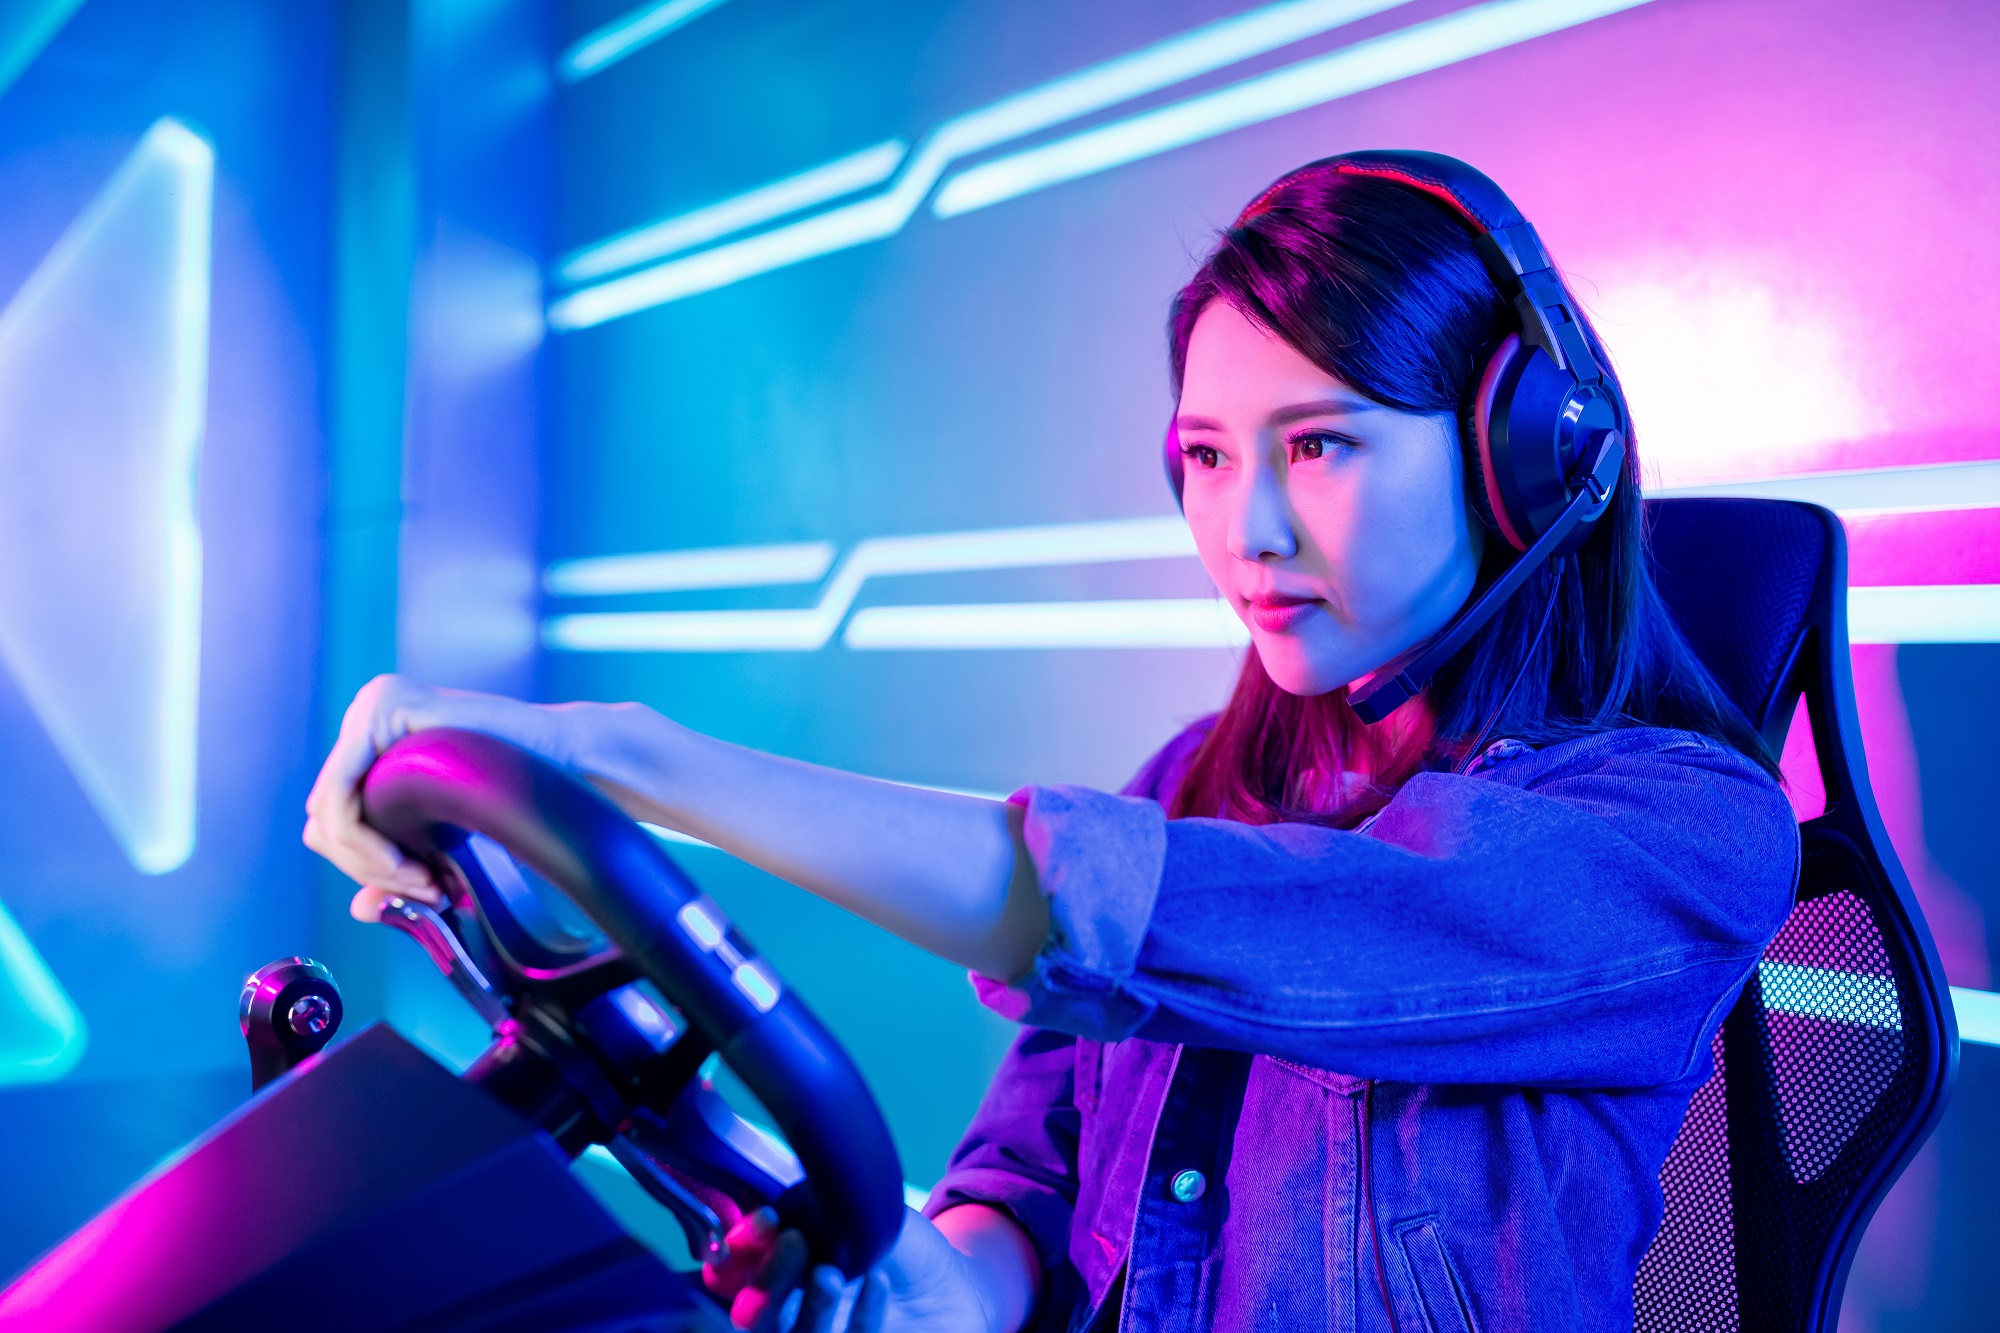 Young Asian Pro Gamer Girl Play Car Racing Online Video Game